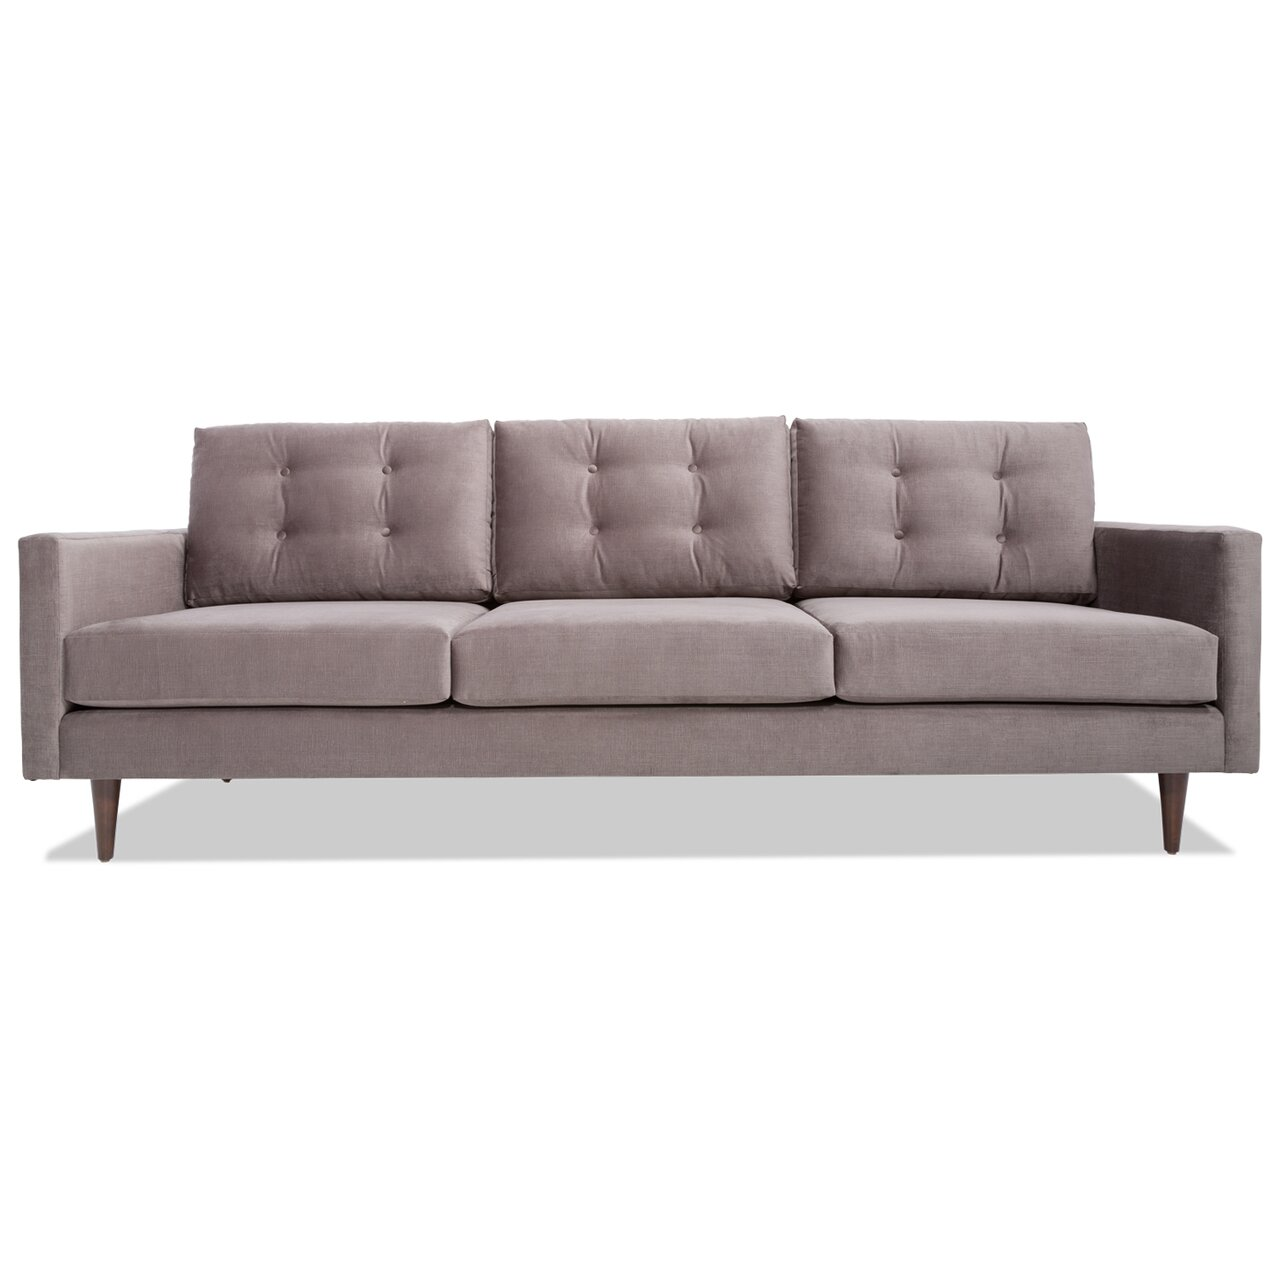 Danish modern sleeper sofa danish mid century modern back for Modern furniture sofa